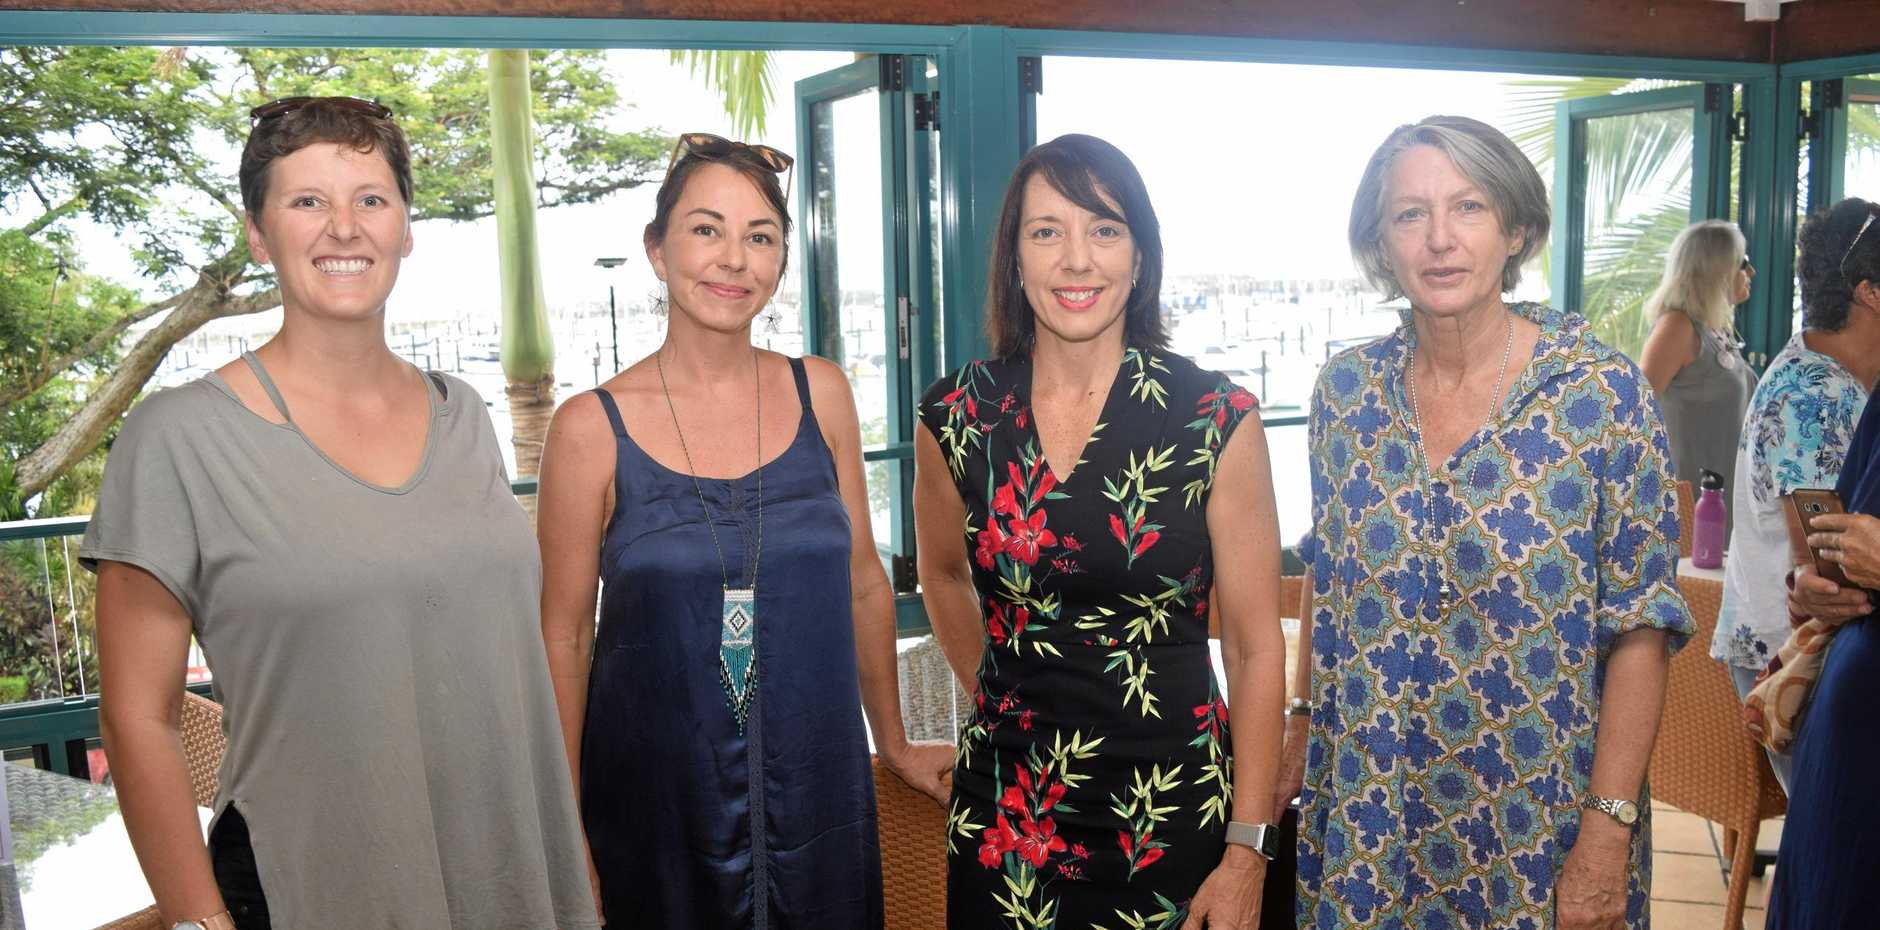 CONSERVATION: Whitsundays Community Garden's Rosie O'Brien, Whitsundays Action Climate Collective's Jessa Lloyd, Labor candidate for Dawson Belinda Hassan and Kerry McCourt.